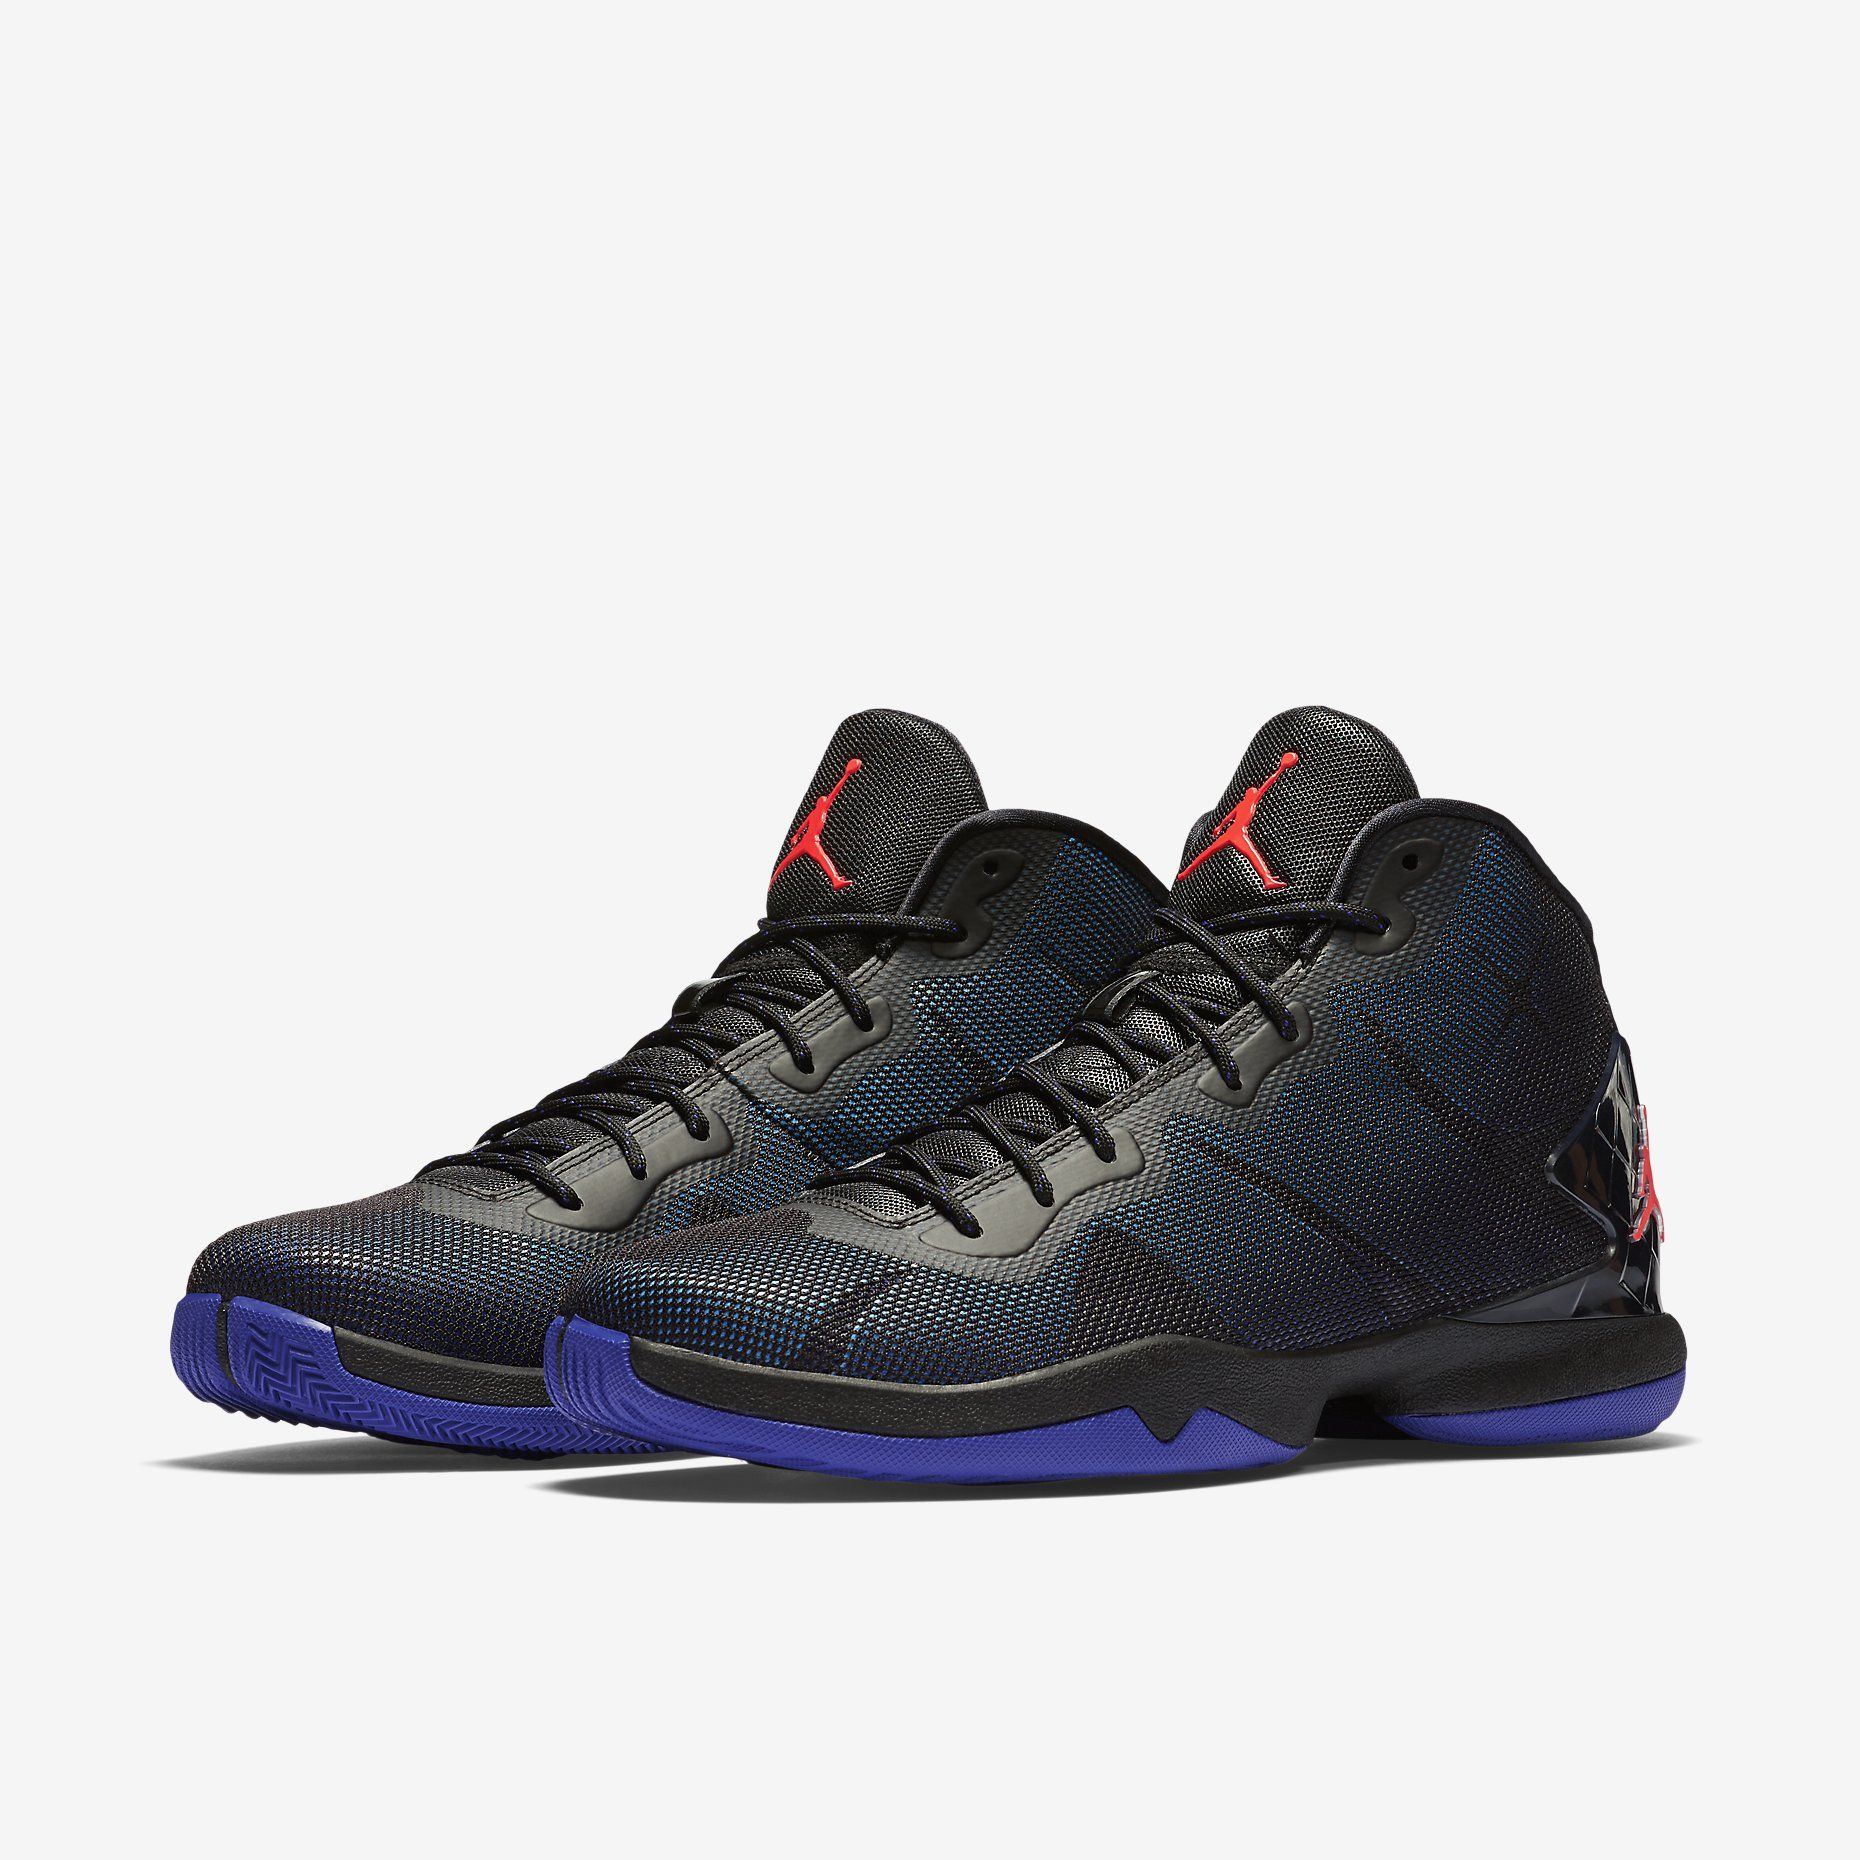 super popular c5425 b589e Chaussures Jordan Super.Fly 4 Noir Bleu 139.80€ sur www.basketstore.fr